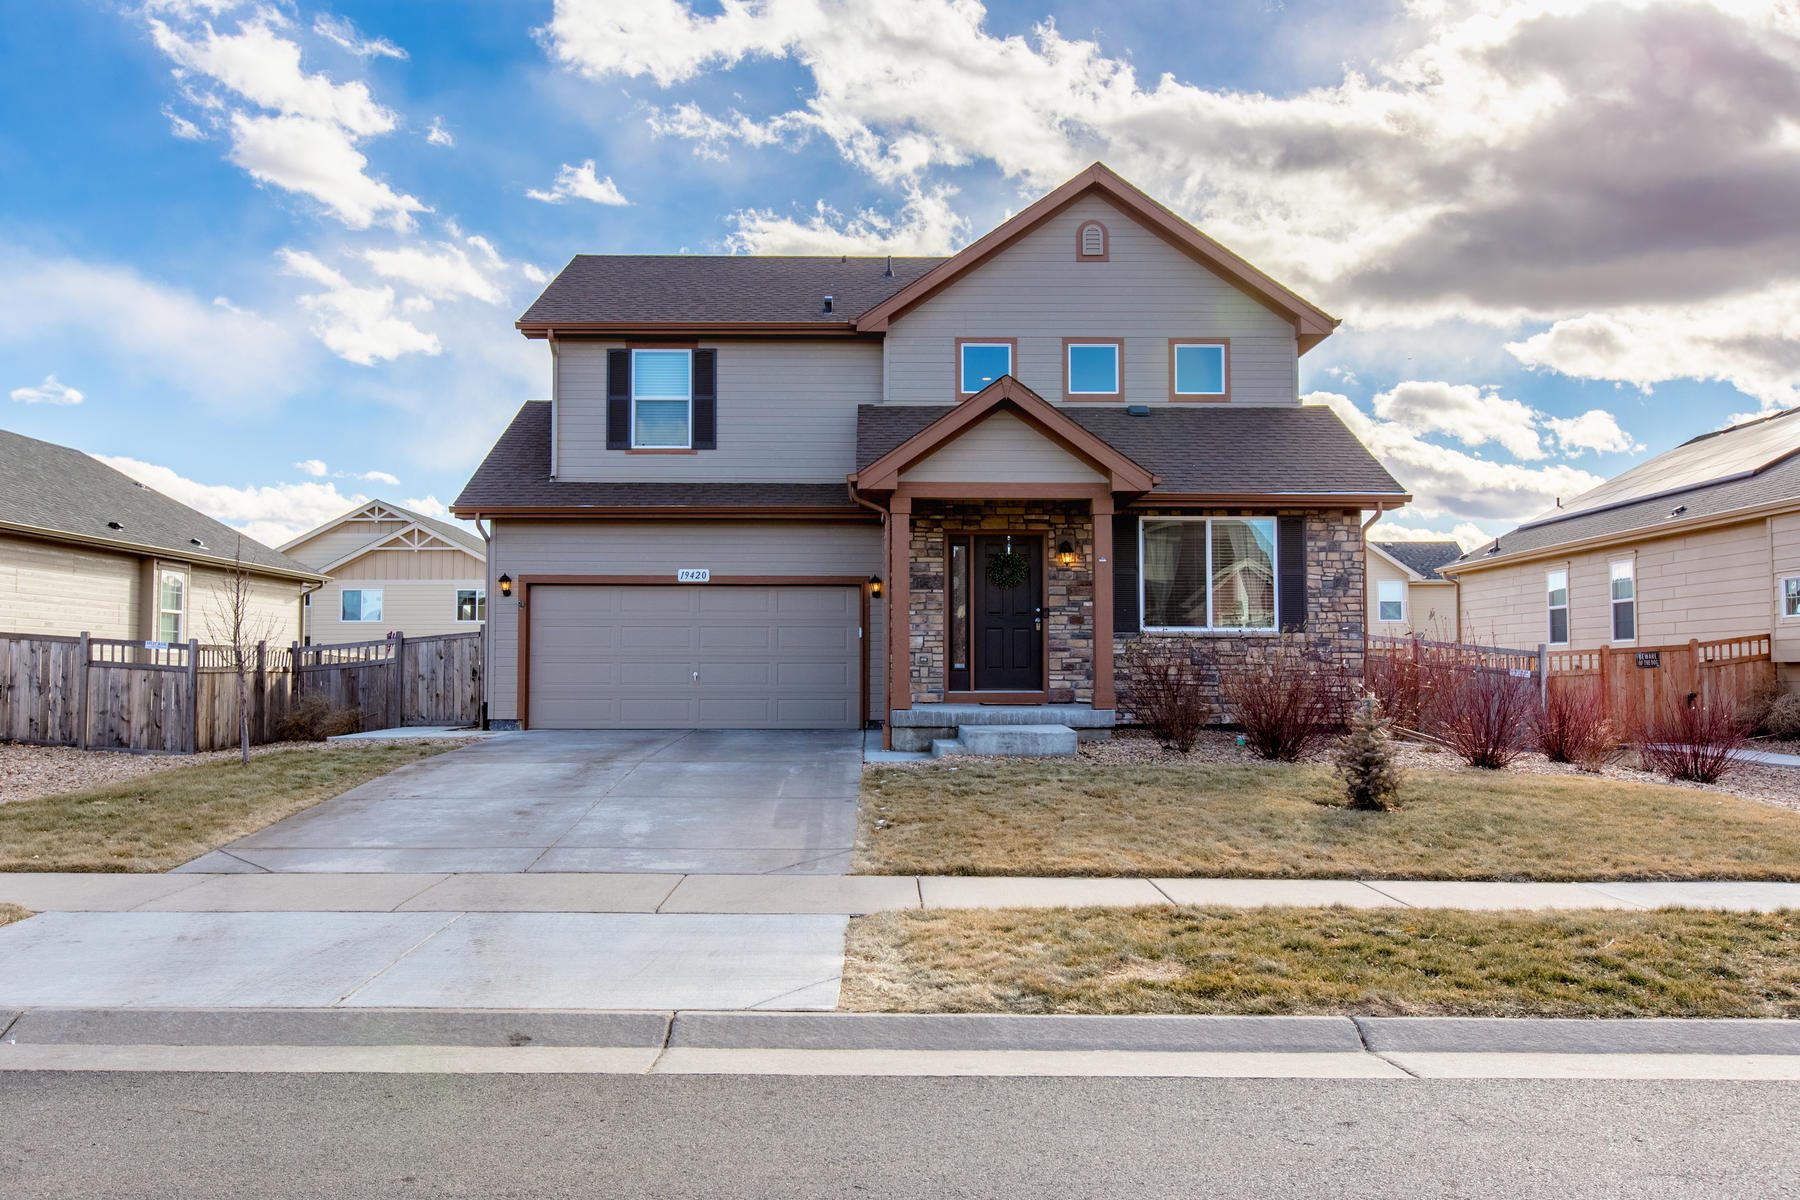 Single Family Home for Active at Adorable Home Offers Light-filled Interior Spaces and Versatile Open Floor Plan 19420 E 61st Dr Aurora, Colorado 80019 United States